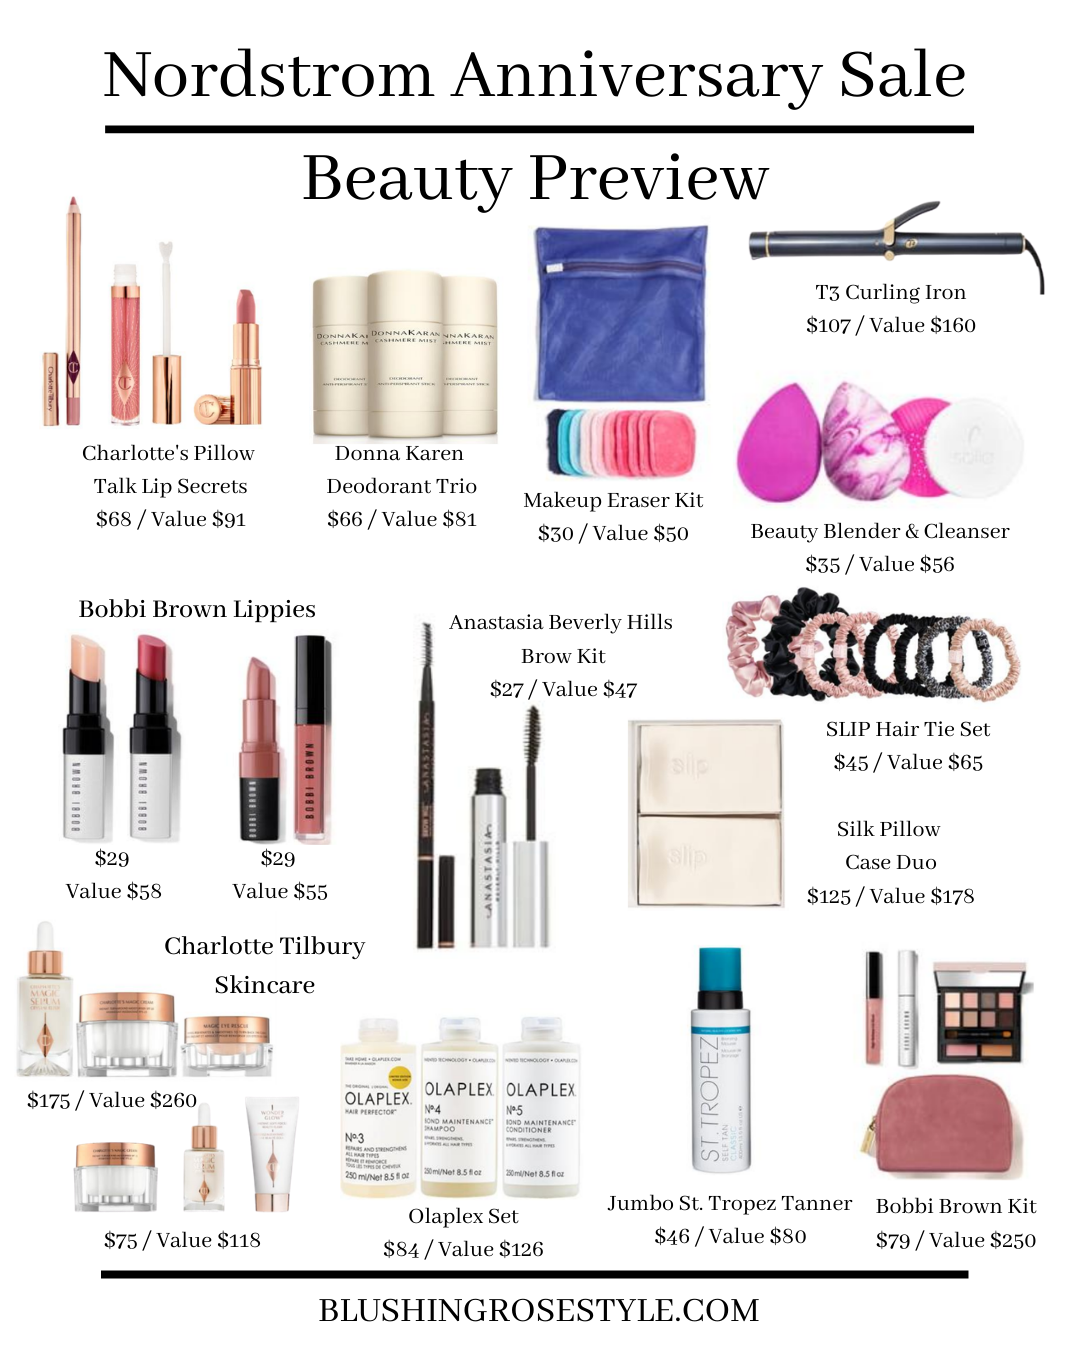 Nordstrom Anniversary Sale 2020 - Beauty Preview